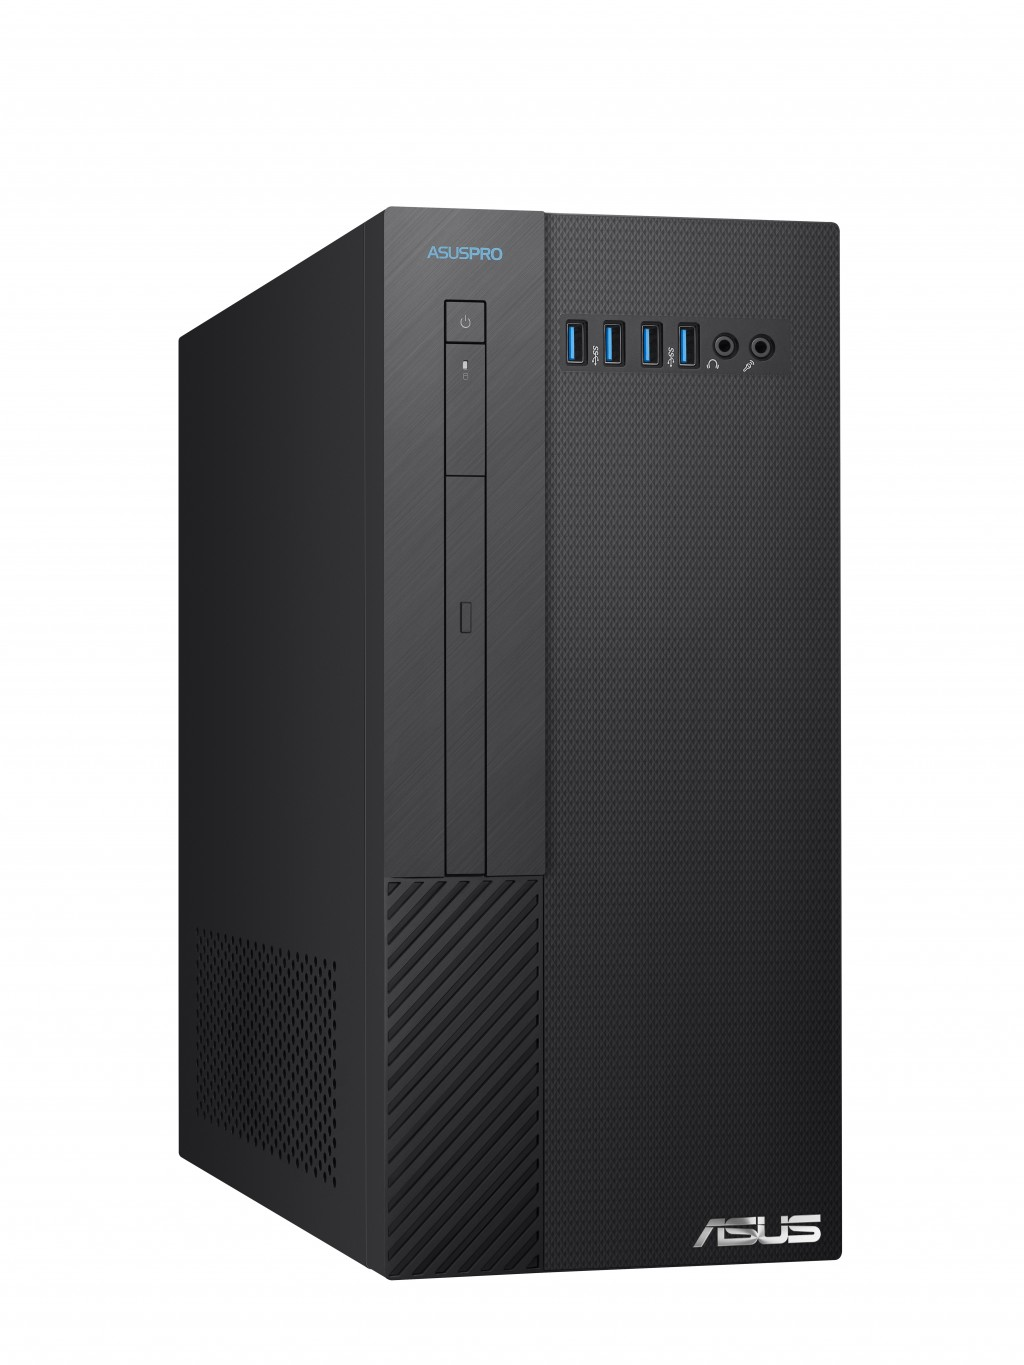 Asus Pro D340MF-I59400068R Desktop, Intel Core i5, i5-9400, Internal memory 8 GB, DDR4 U-DIMM, SSD 512 GB, DVD reader 8X, Windows 10 Pro, Warranty 24 month(s)